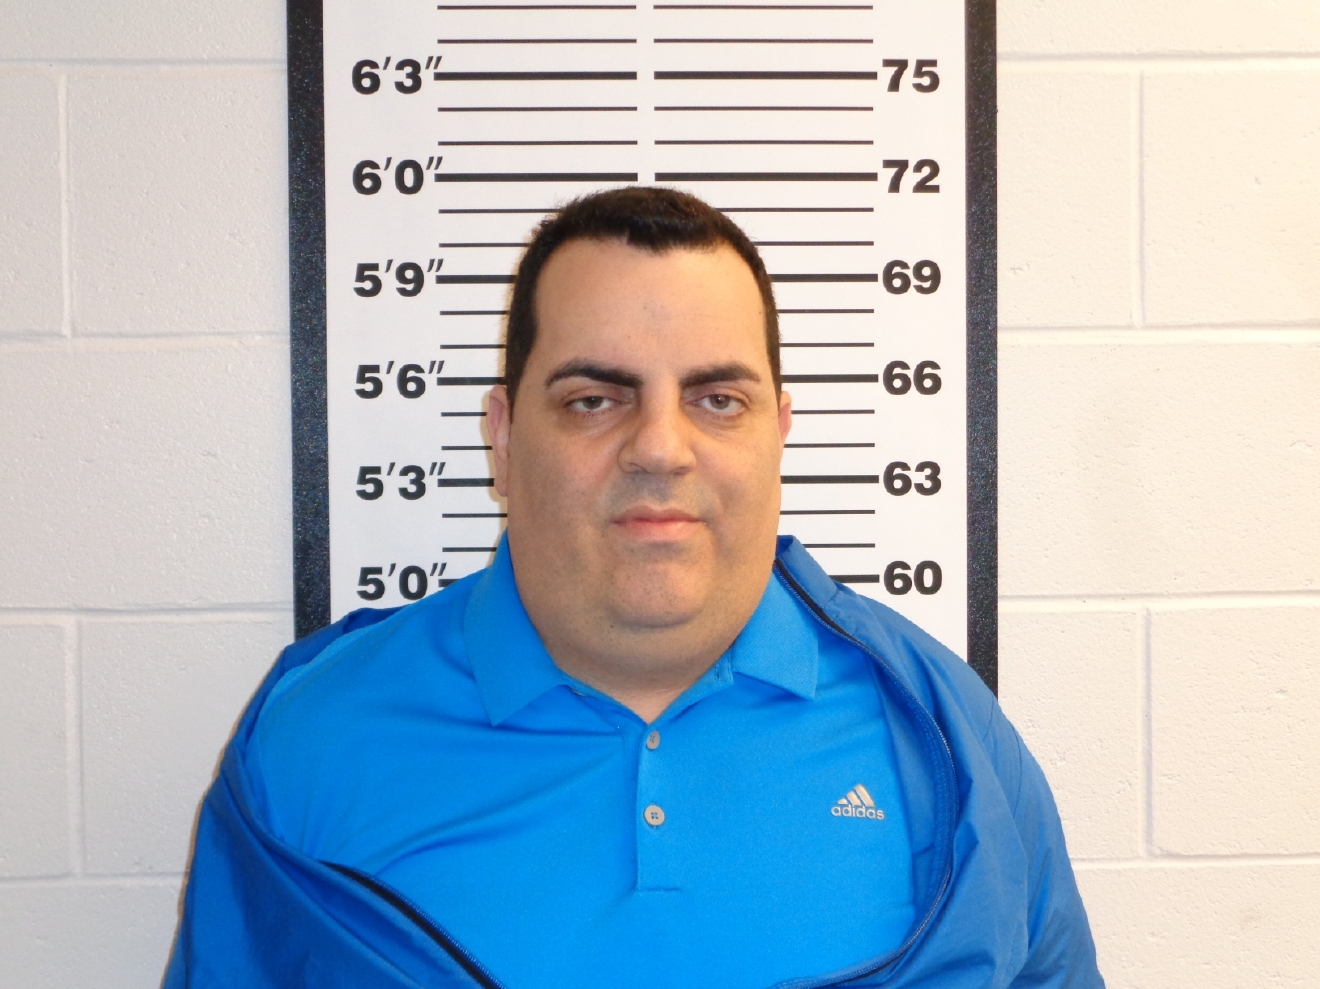 Hady El Ahmar (Freeport Police Department)